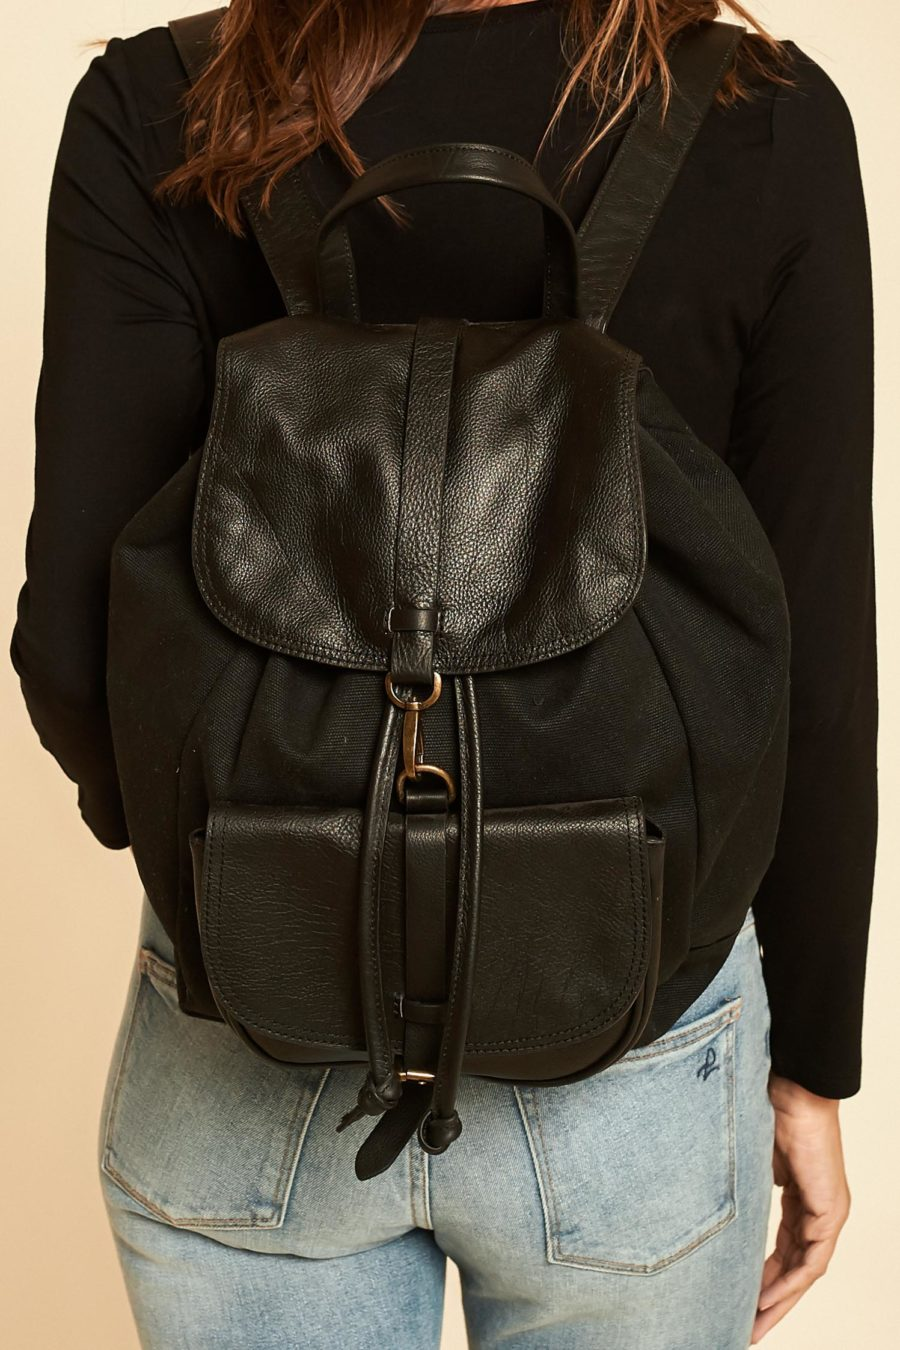 Thread & Supply: Flatlands Backpack